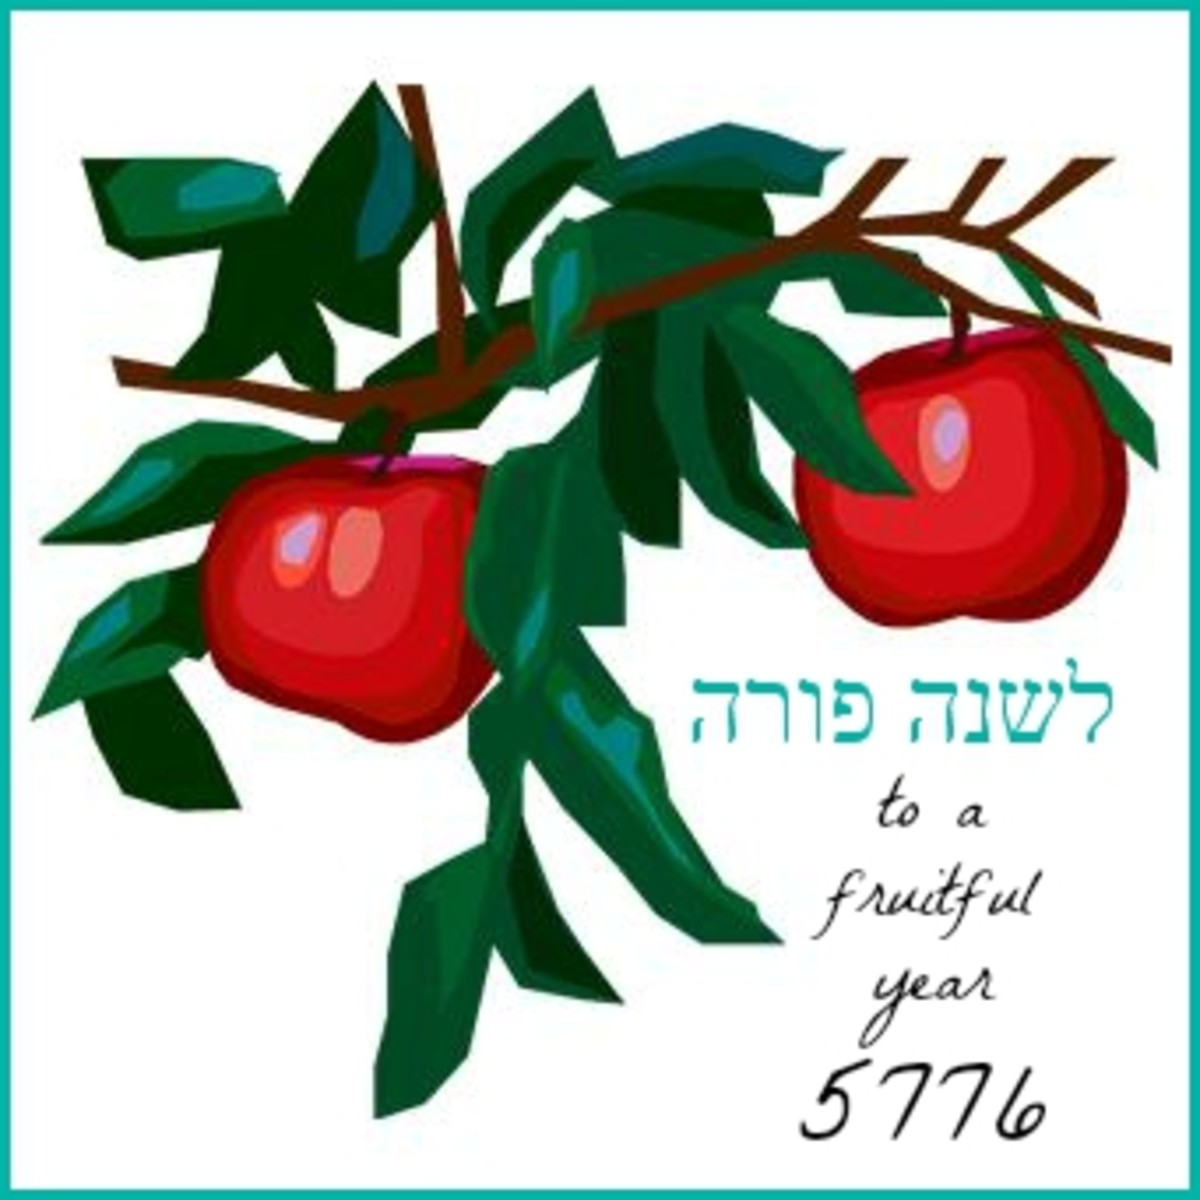 A Fruitful Jewish New Year 5776